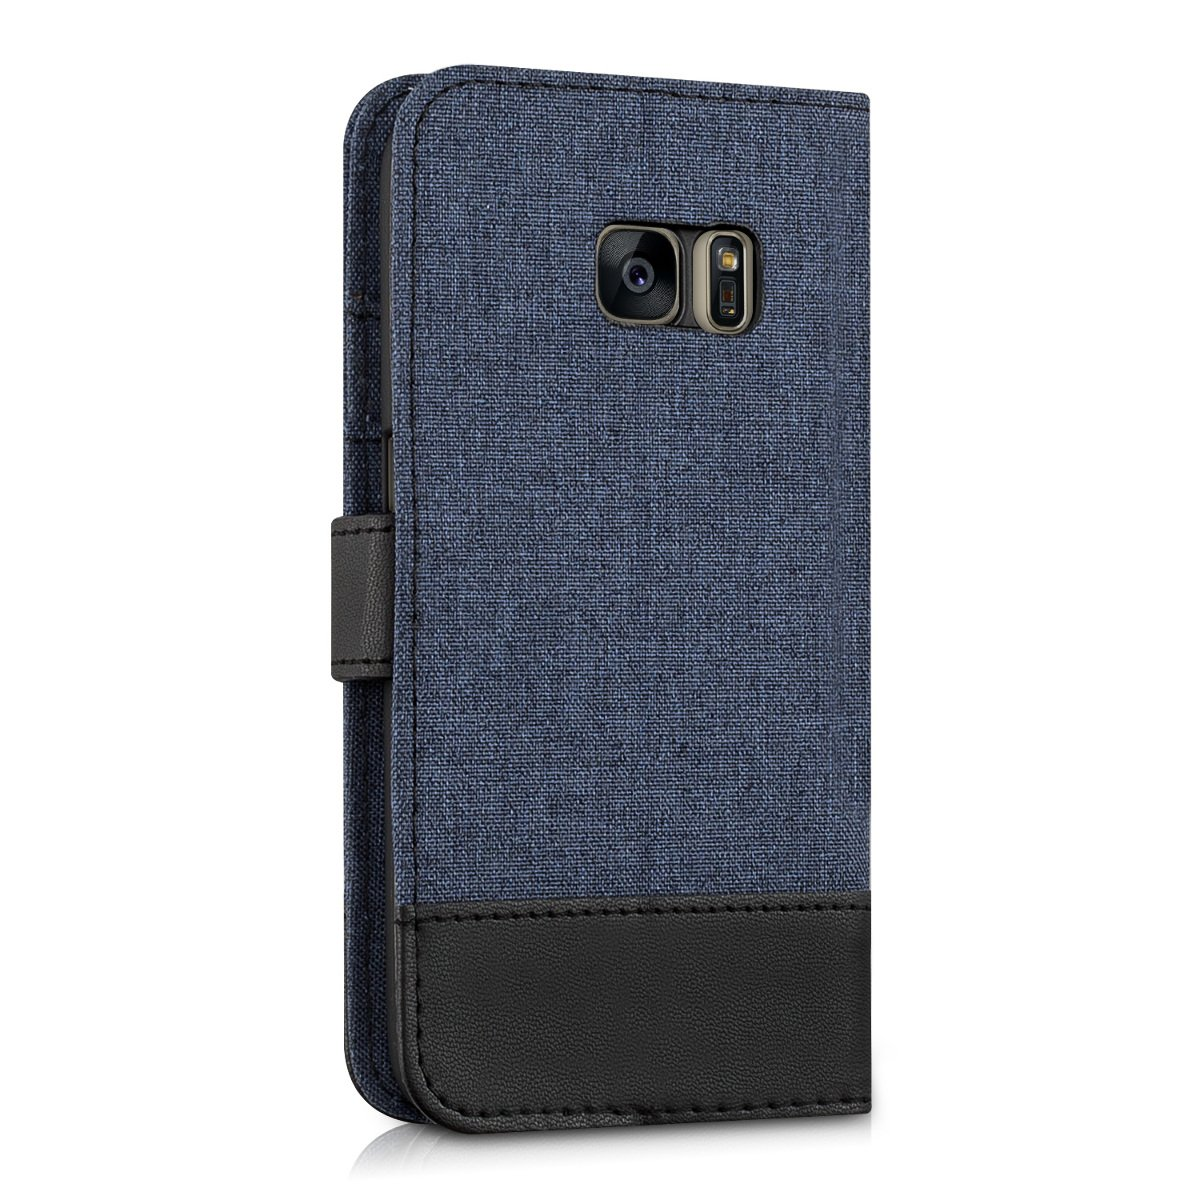 Fabric and PU Leather Flip Cover with Card Slots and Stand Dark Blue//Black kwmobile Wallet Case for Samsung Galaxy S7